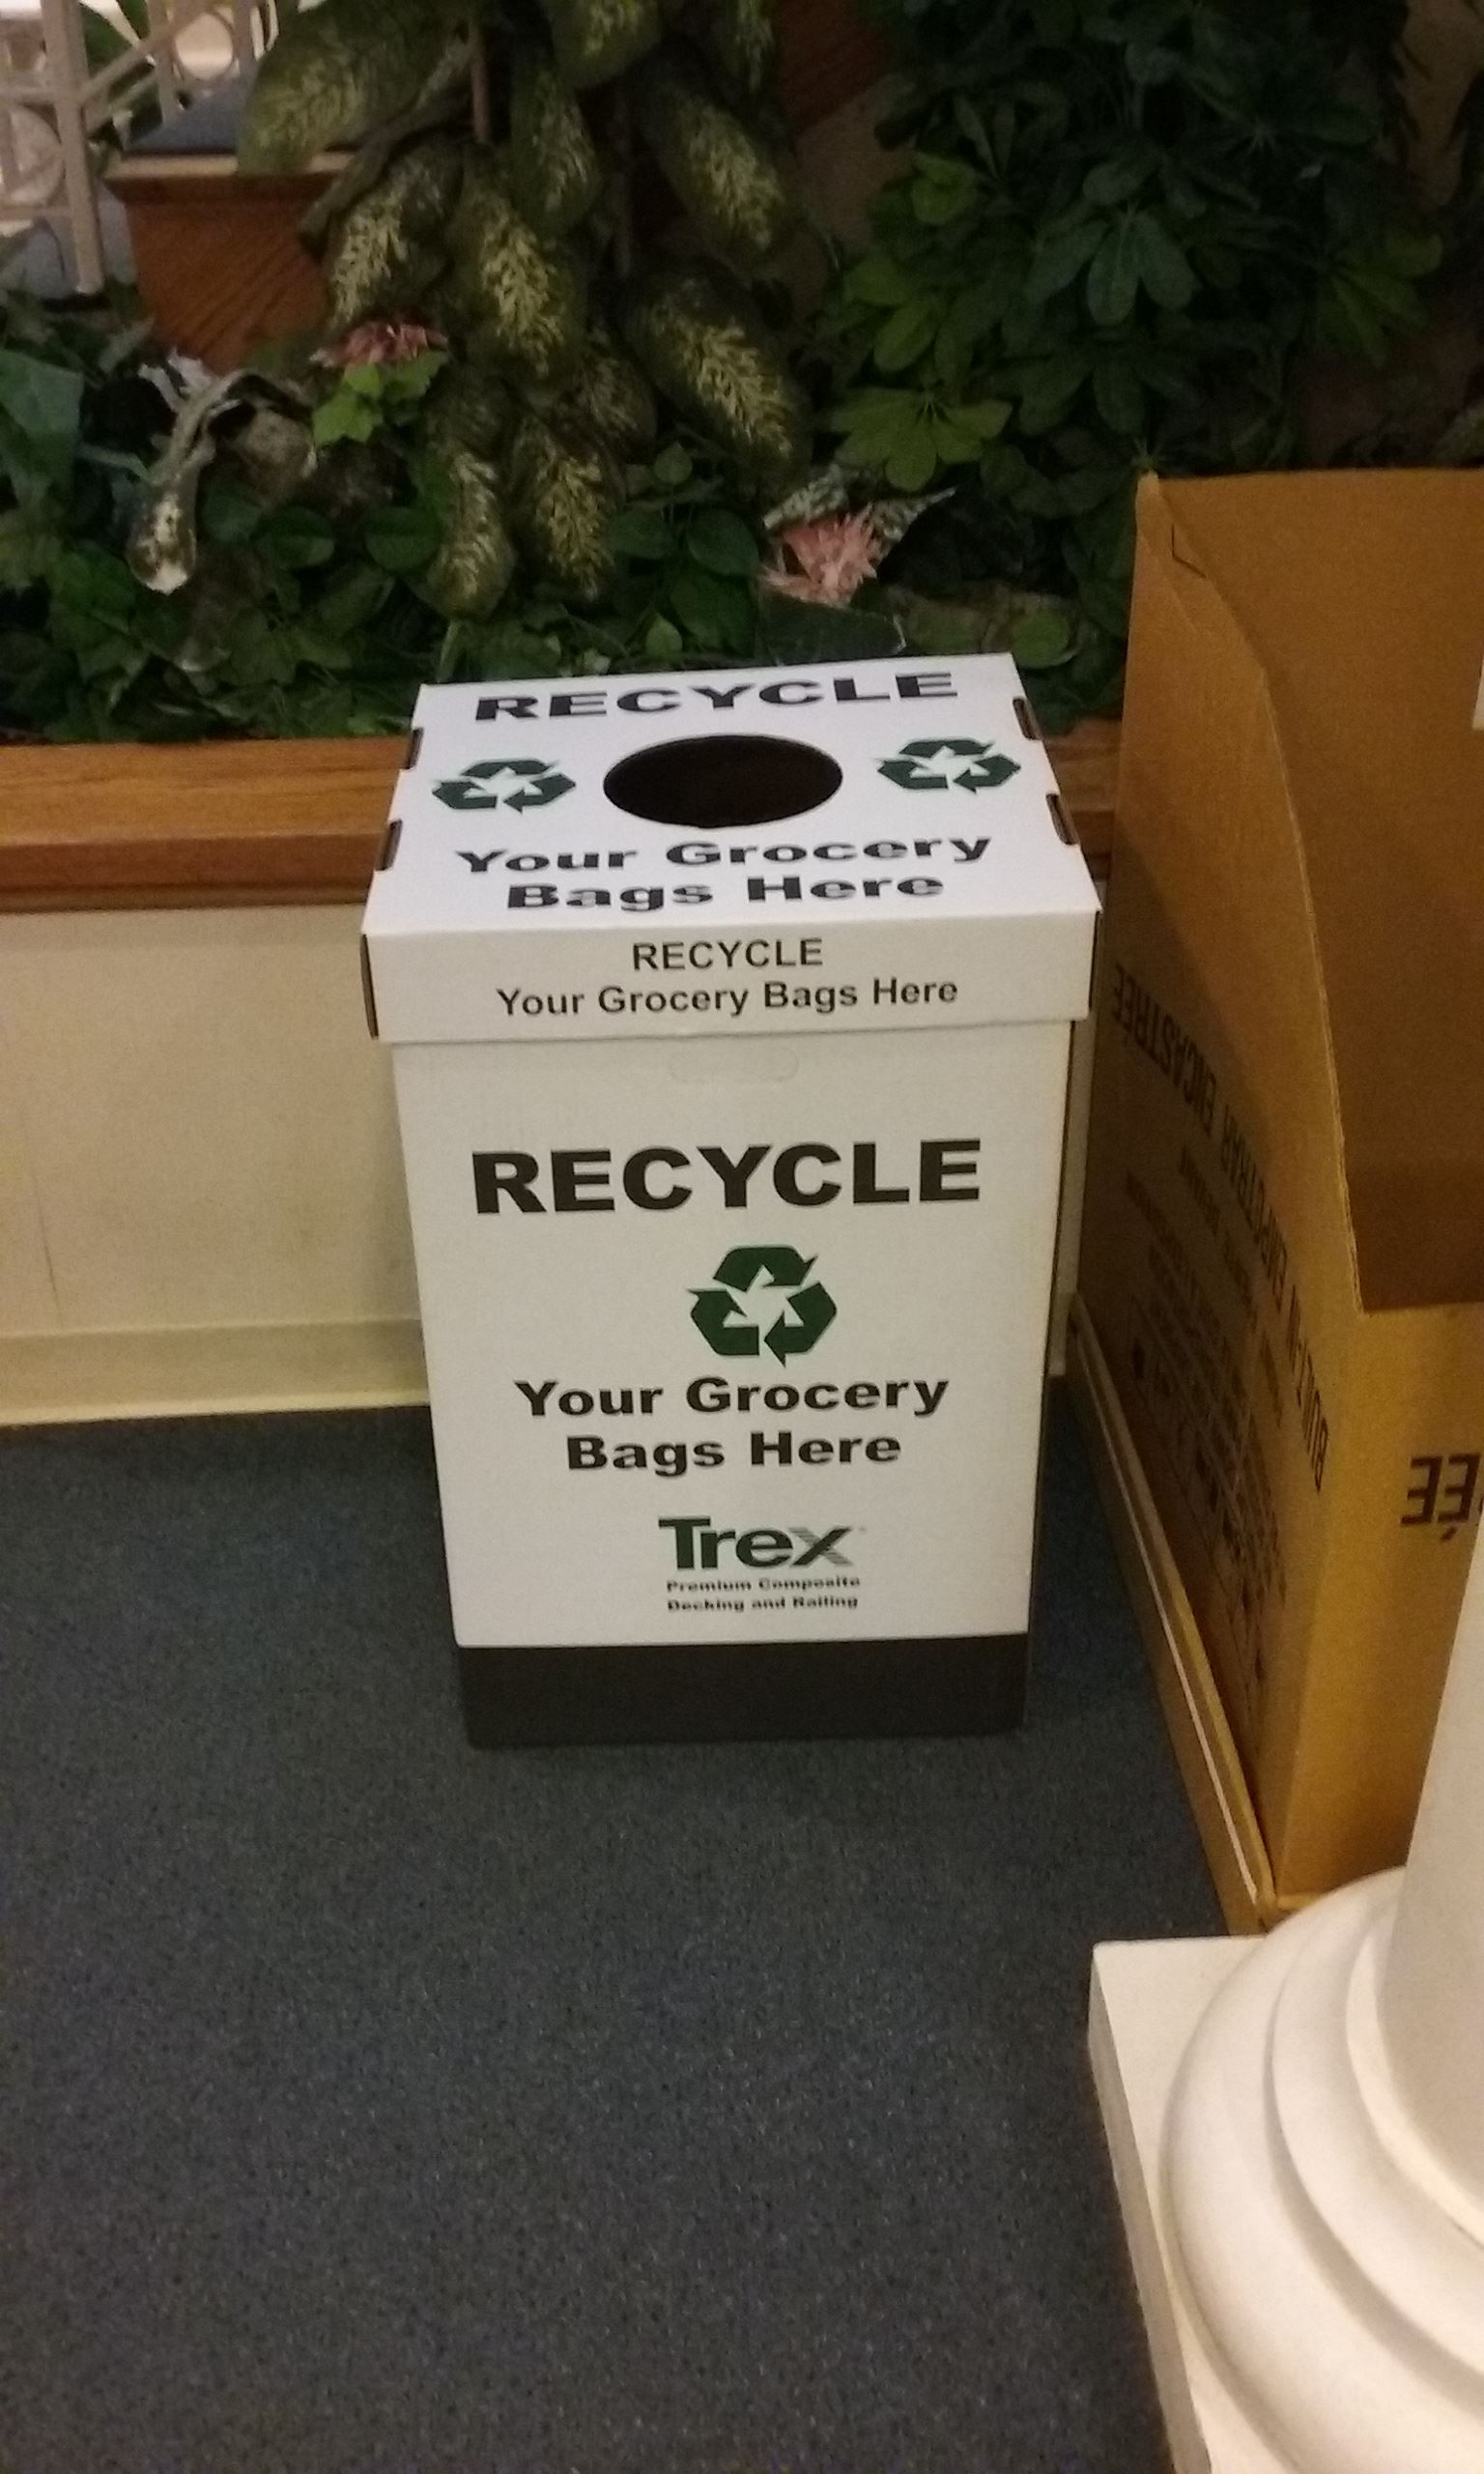 Plastic Bag Recycling Collection Box in Borough Hall